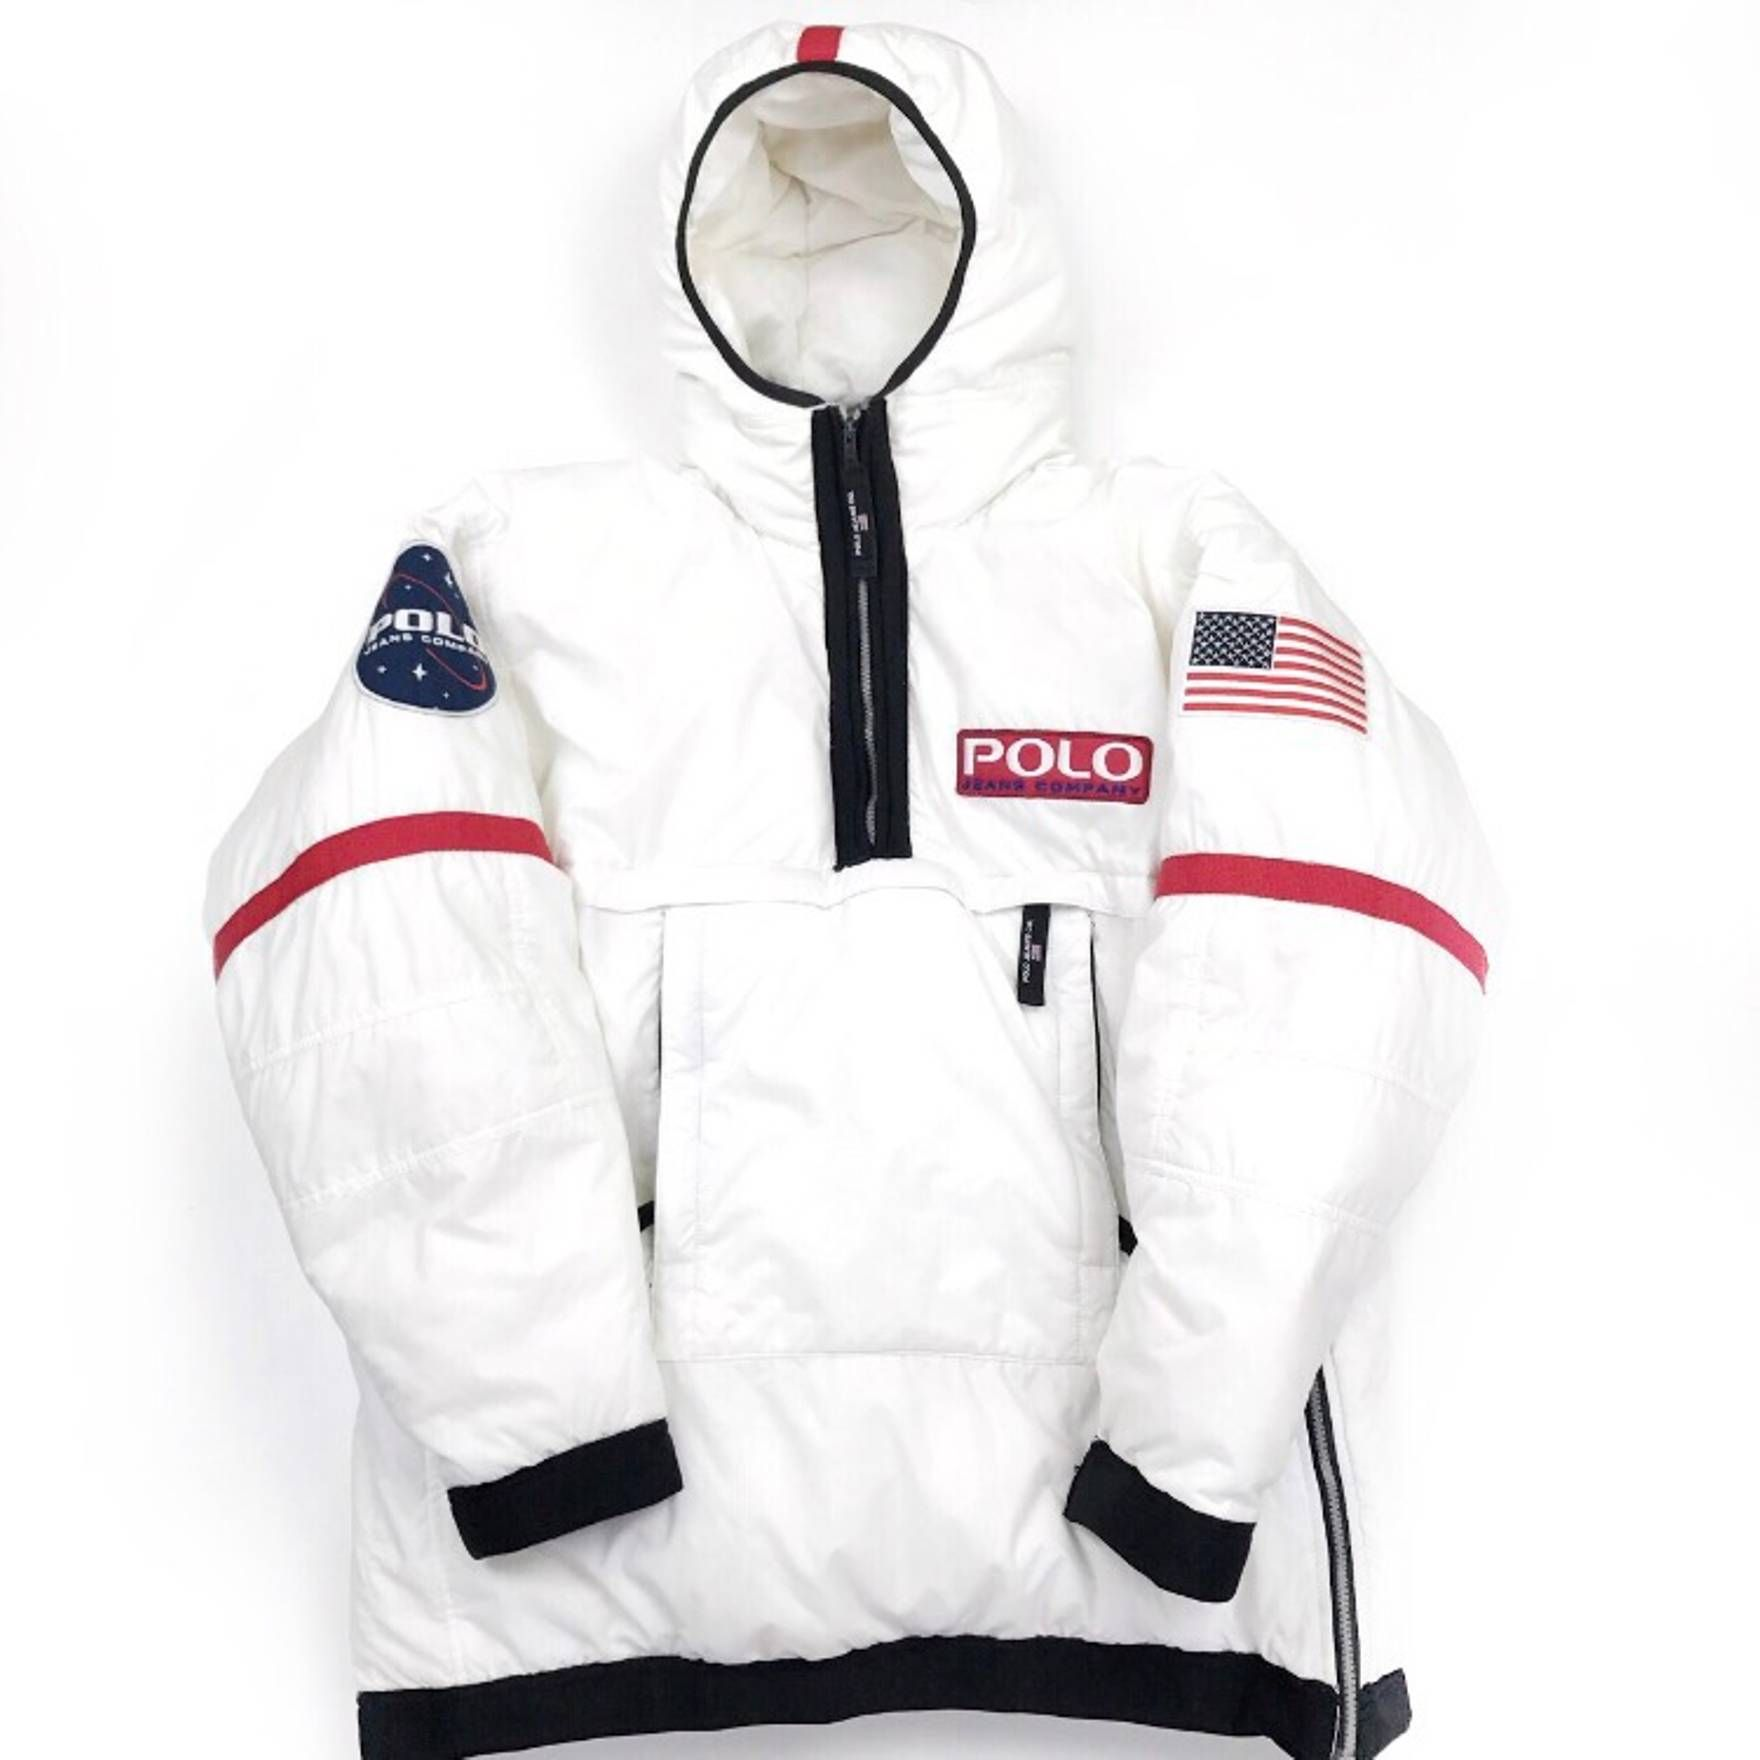 6c3ba481d8 Ralph Lauren Polo NASA spaceman Jacket Size US L   EU 52-54   3 ...